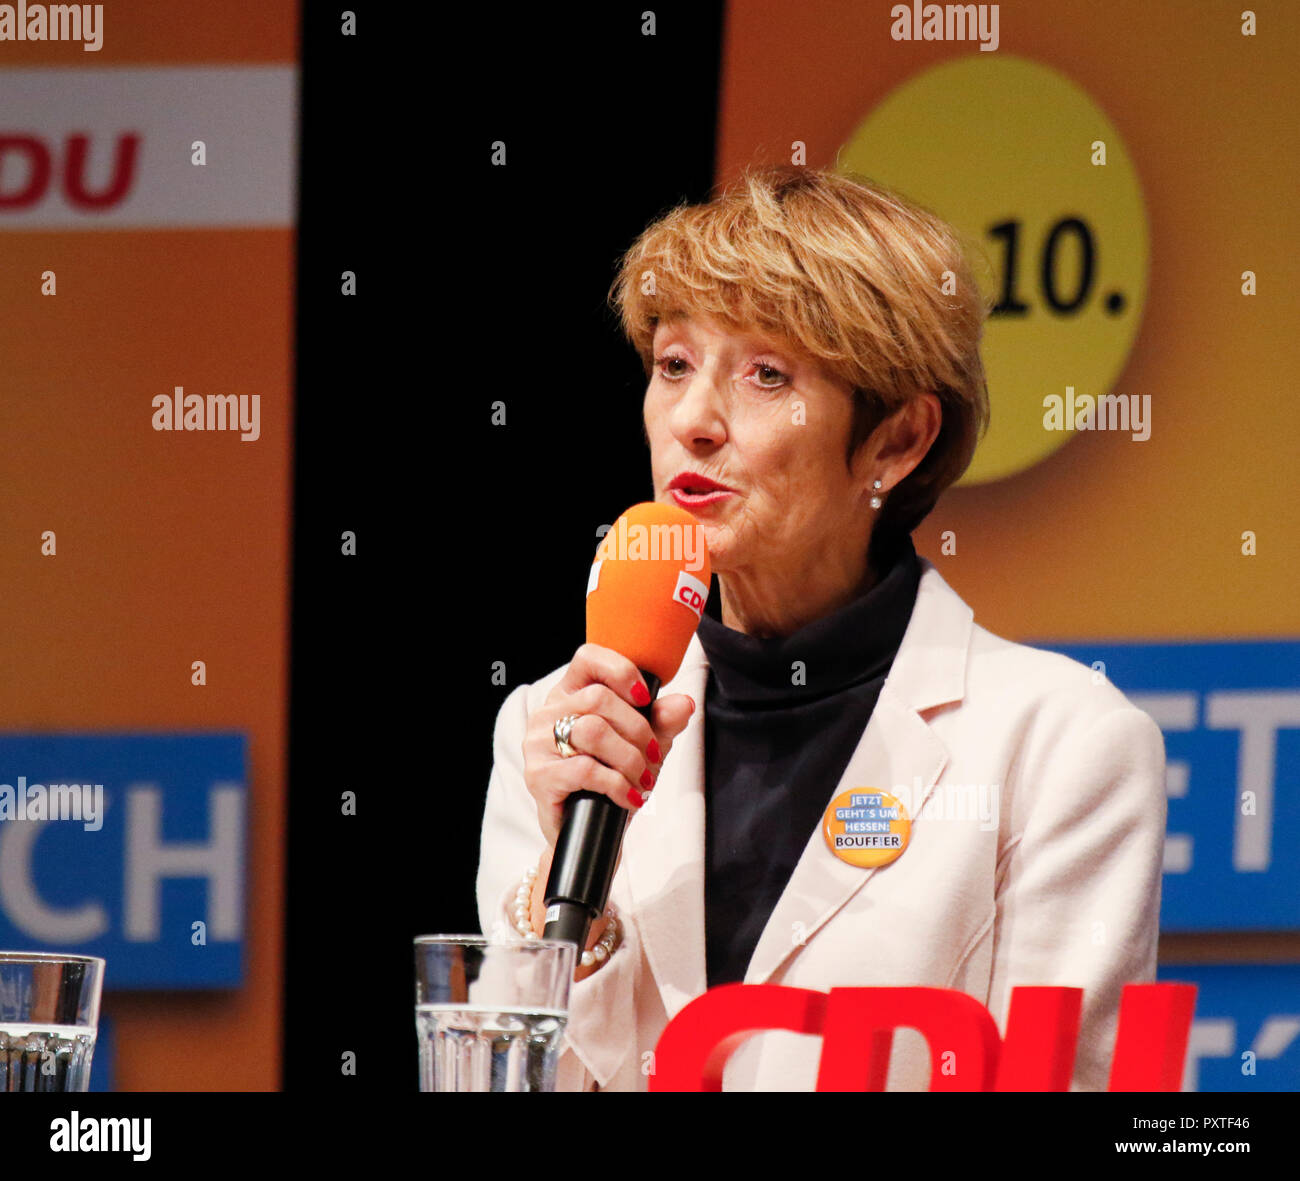 Dieburg, Germany. 23rd Oct, 2018. German Chancellor Angela Merkel attended a political rally of her CDU party in Dieburg ahead of the upcoming state election in the German state of Hesse. With less than a week to go to the election, the CDU is still leading the polls, but gas lost more than 10% compared to the last election. Credit: Michael Debets/Pacific Press/Alamy Live News - Stock Image